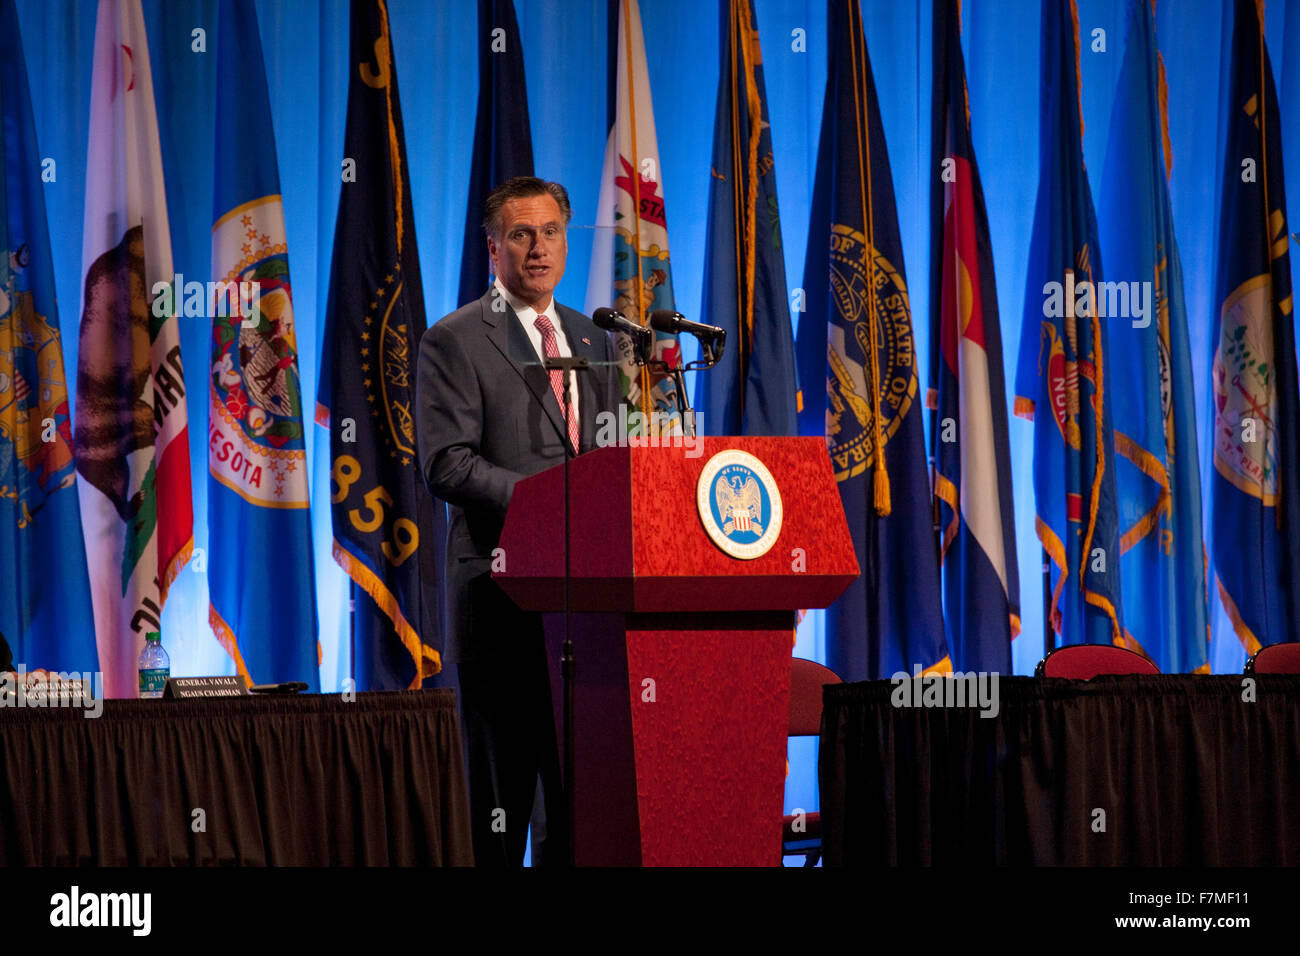 RENO, NEVADA - September 11, 2012: Governor Mitt Romney speaks at the National Guard Association, the 2012 Republican - Stock Image